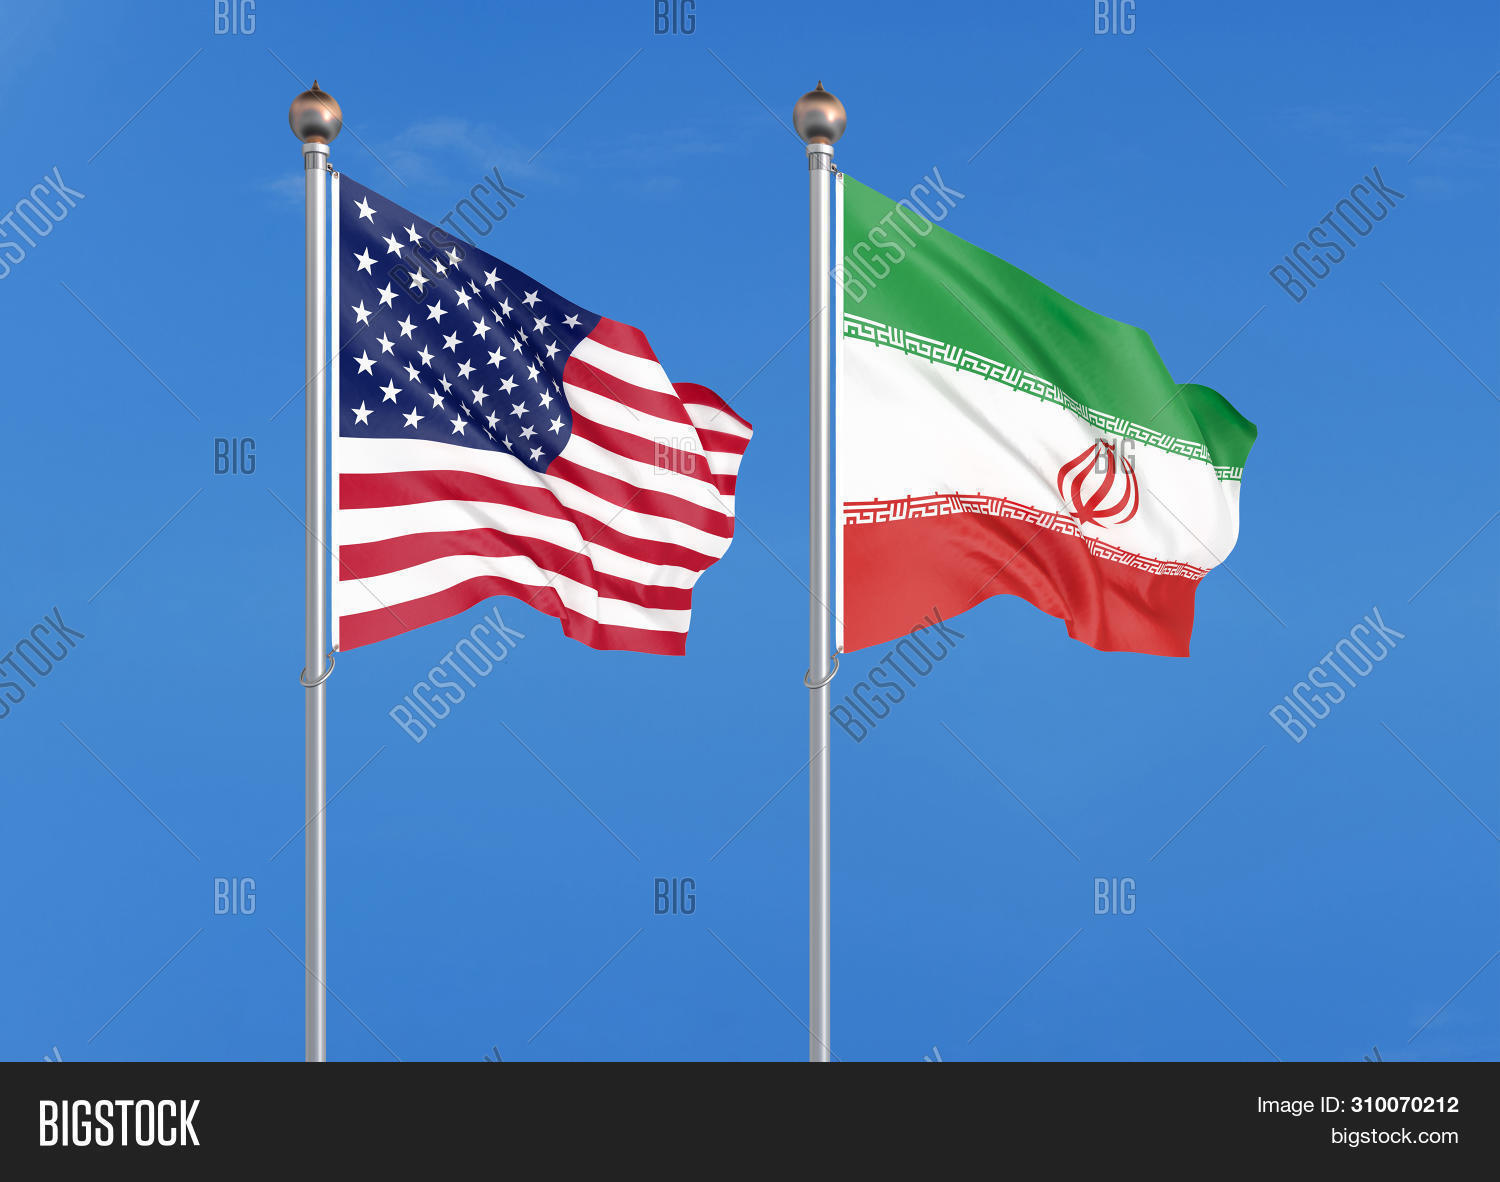 United States of America vs Iran. Thick colored silky flags of America and Iran. 3D illustration on sky background. - Illustration